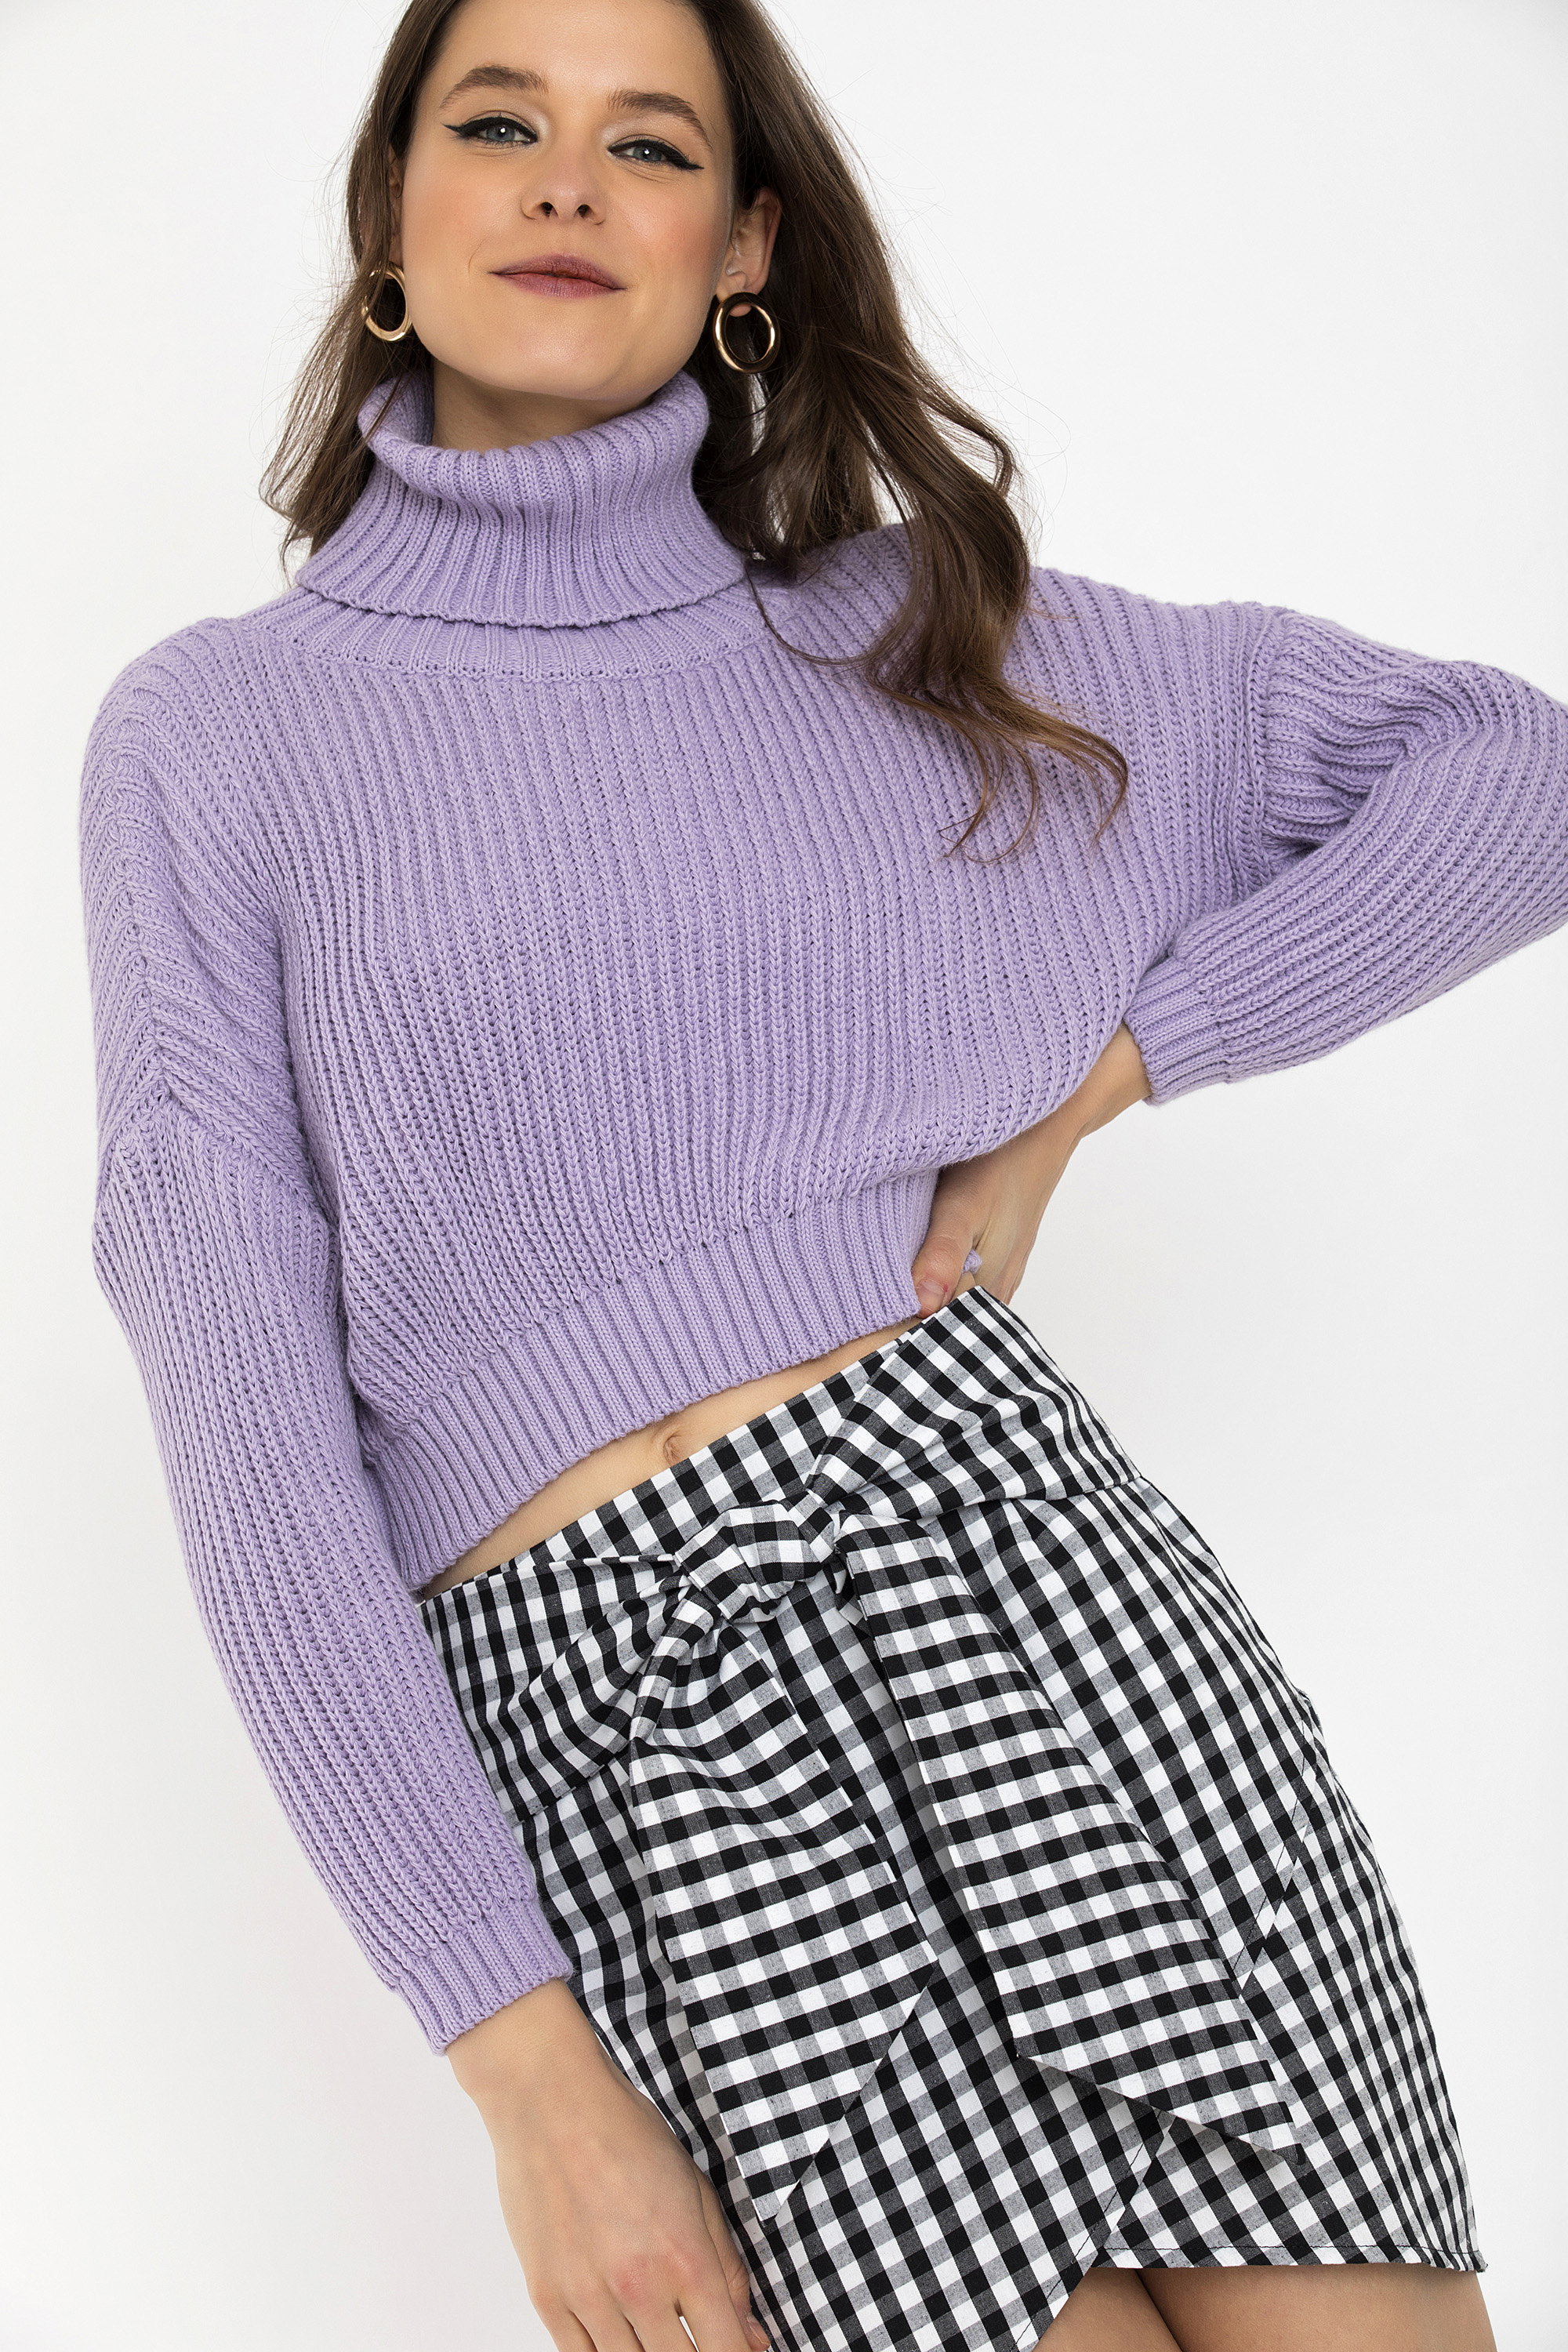 CROPPED ΠΟΥΛΟΒΕΡ - Λιλά clothes   tops   πουλόβερ